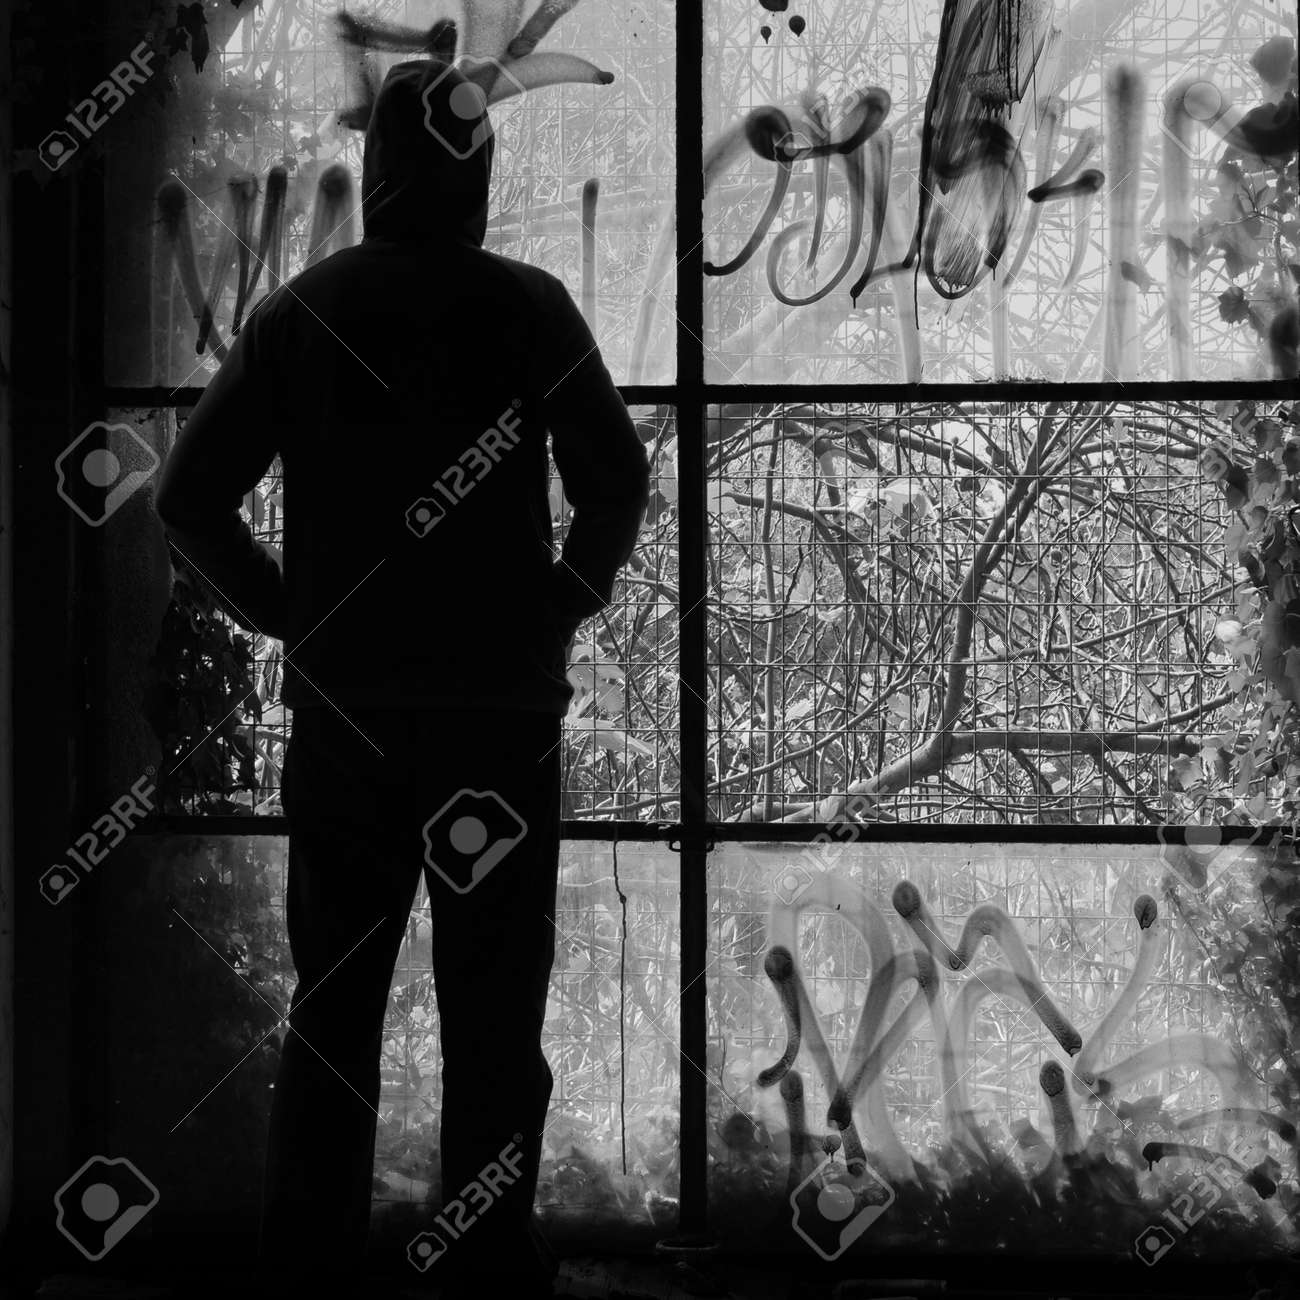 Man Looking Through The Broken Windows Of An Abandoned Building Stock Photo Picture And Royalty Free Image Image 119307784